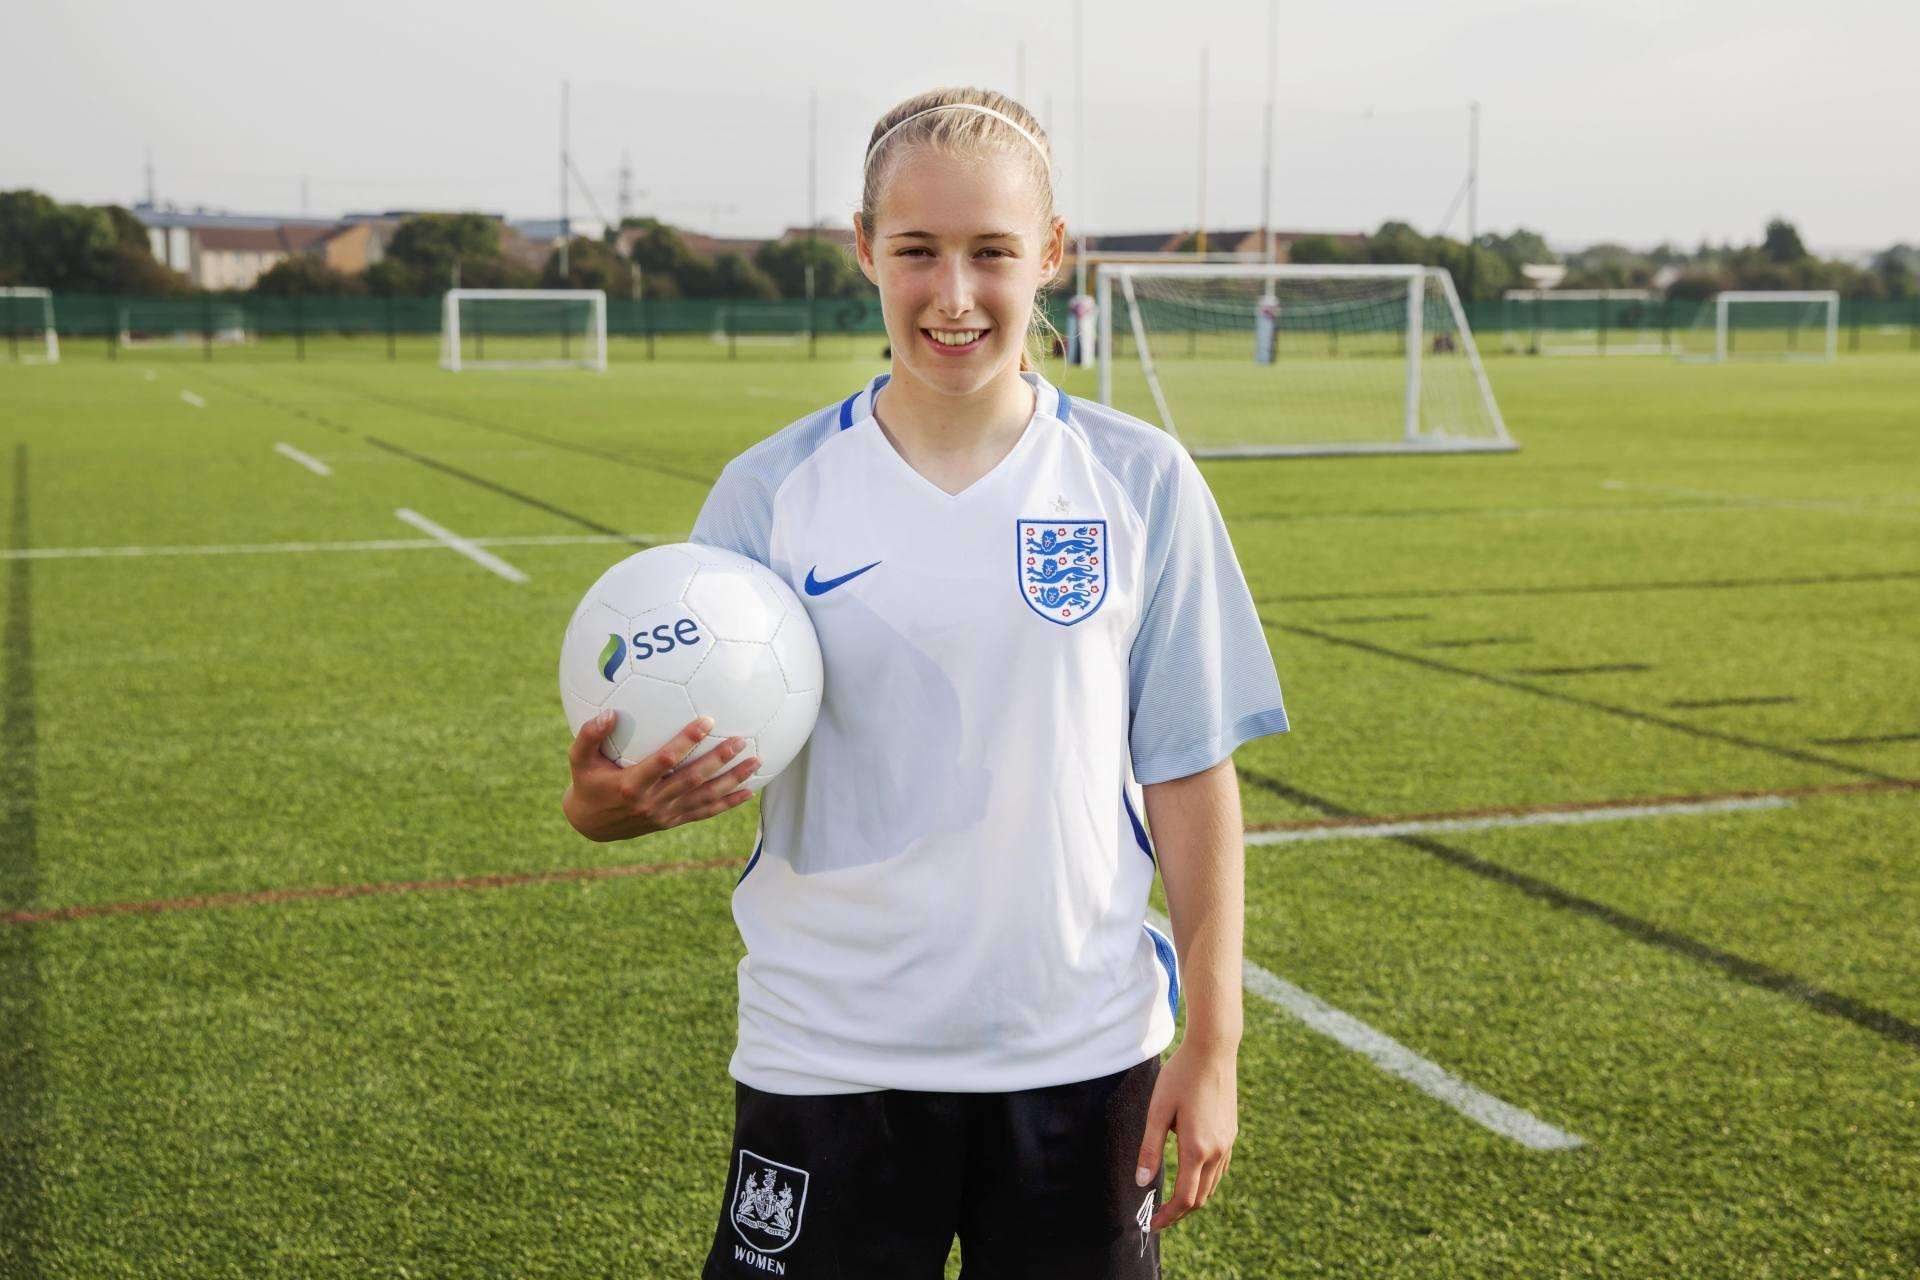 Dad Inspires Daughter to Reach Women's World Cup, England shirt front on%, lifestyle, community%